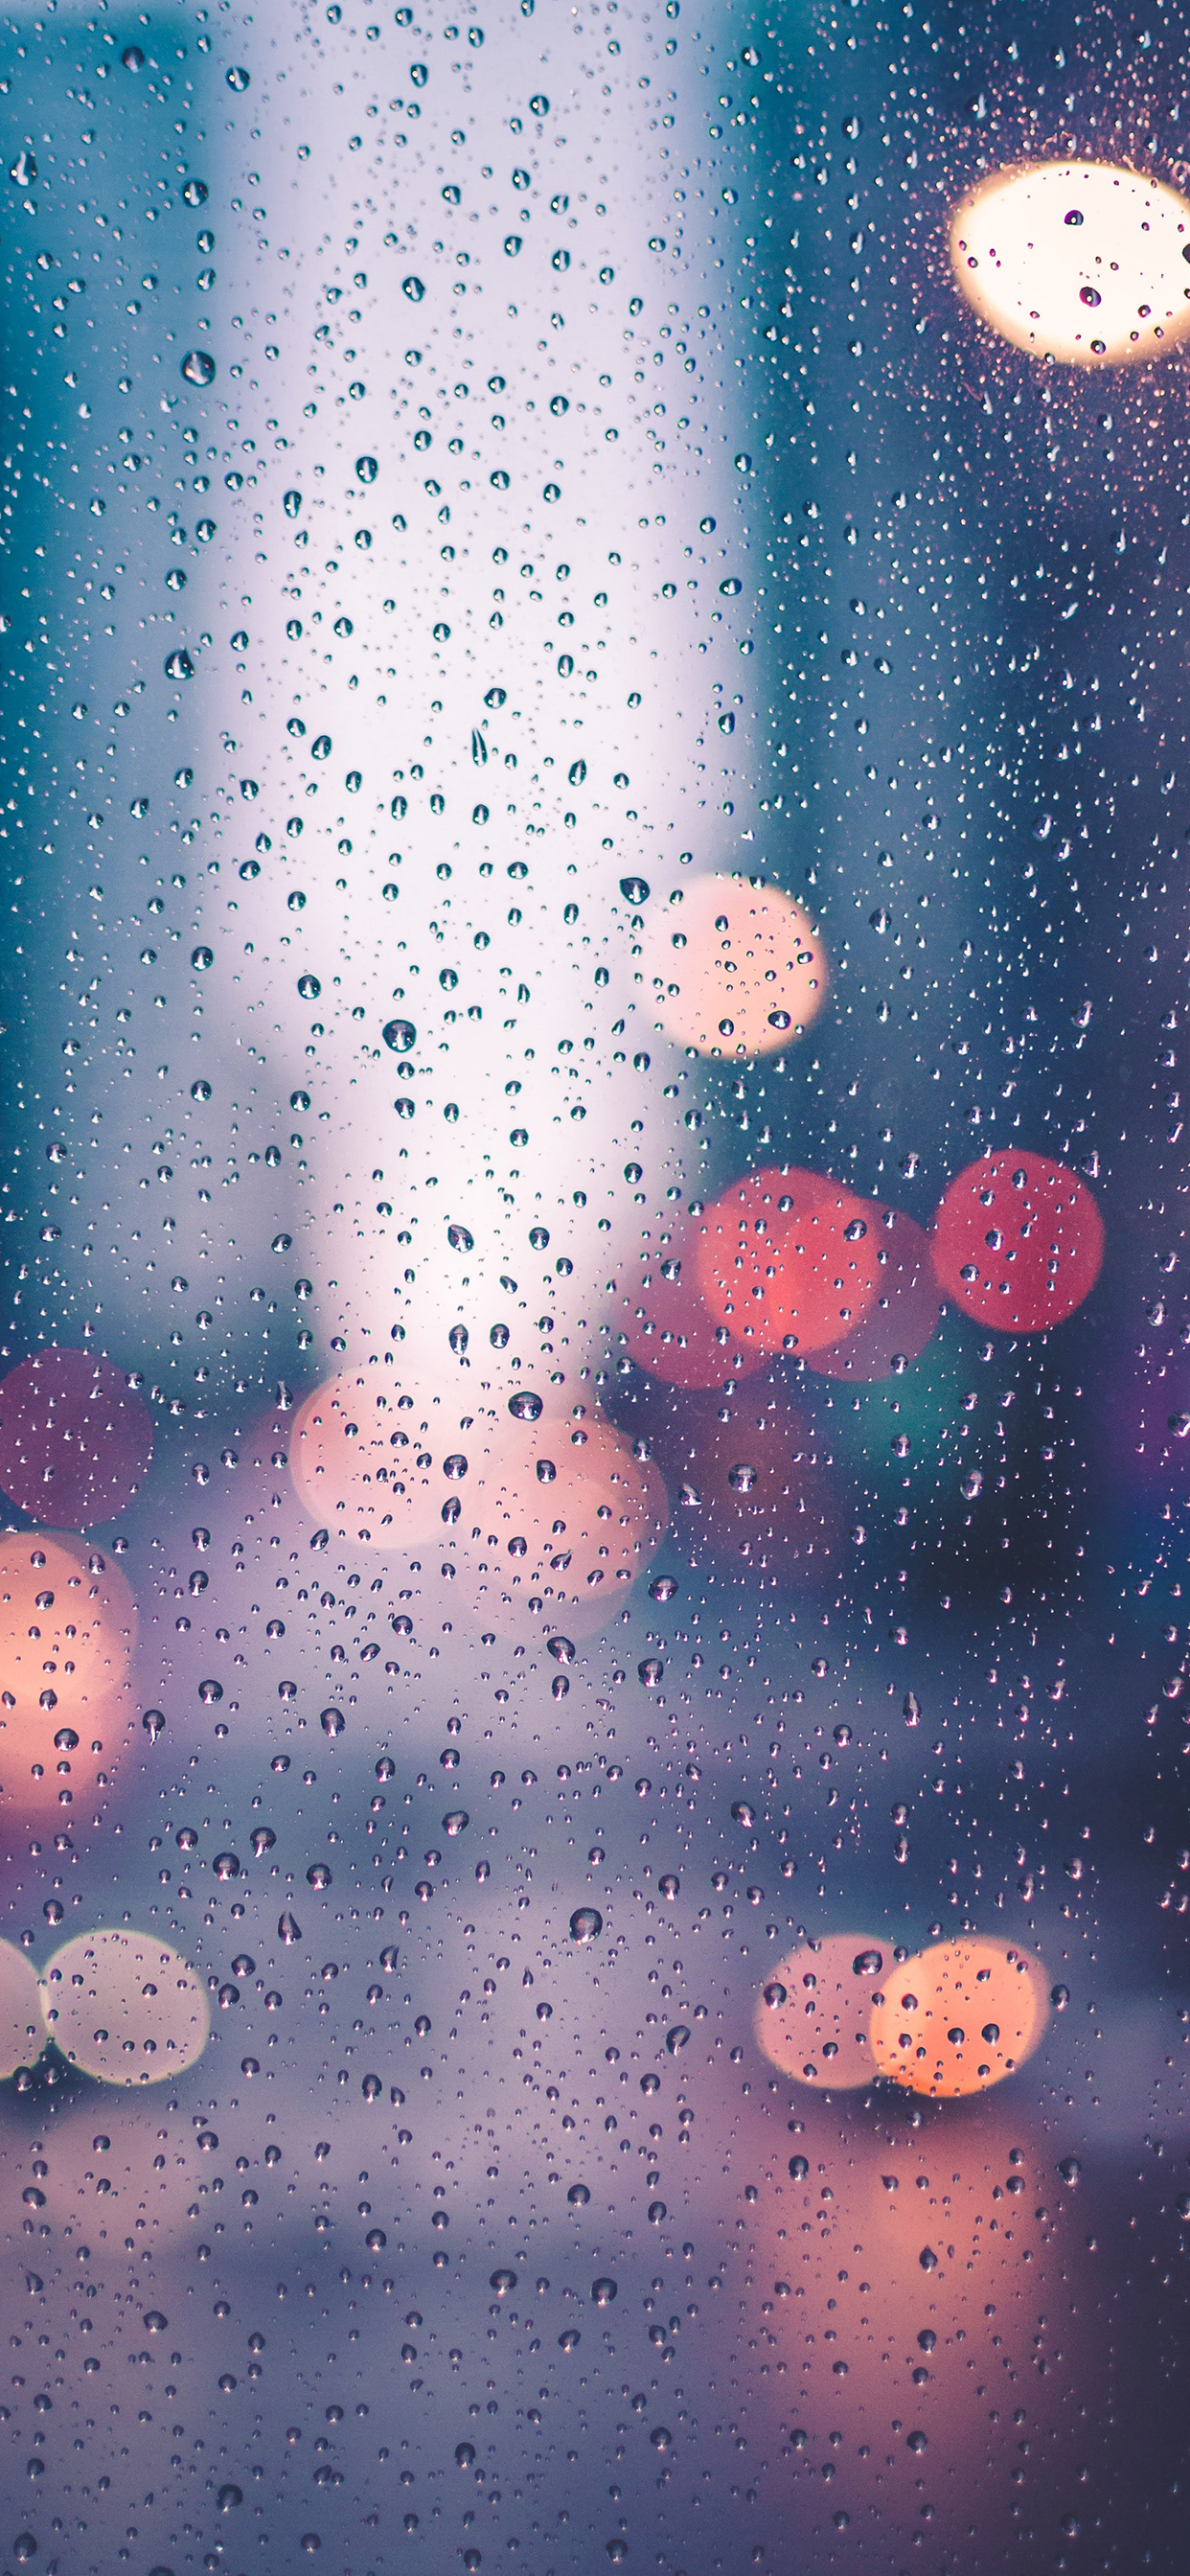 iPhone wallpaper raindrops c Rain drops